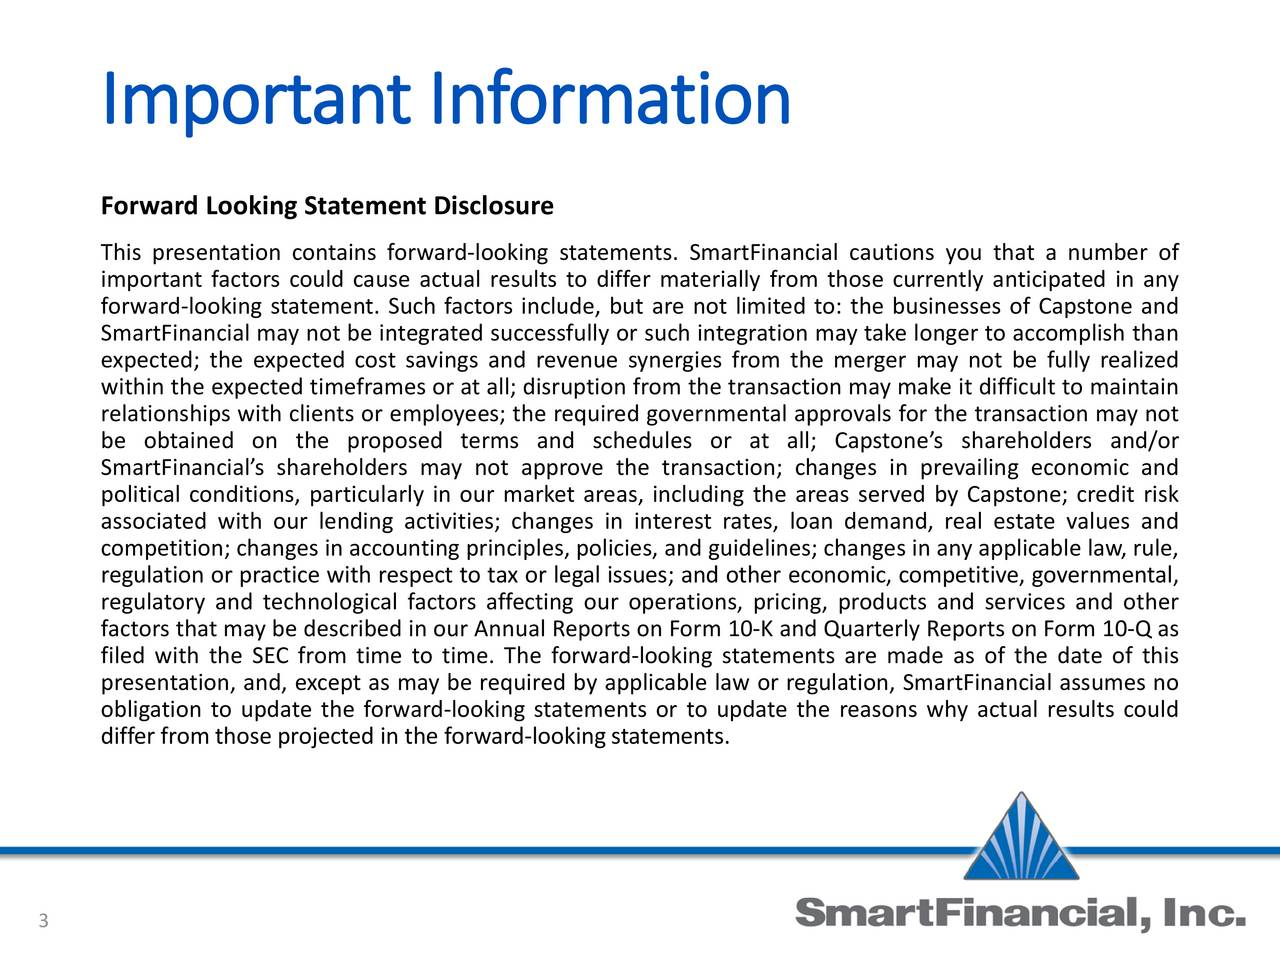 Forward Looking Statement Disclosure This presentation contains forward-looking statements. SmartFinancial cautions you that a number of important factors could cause actual results to differ materially from those currently anticipated in any forward-looking statement. Such factors include, but are not limited to: the businesses of Capstone and SmartFinancial may not be integrated successfully or such integration may take longer to accomplish than expected; the expected cost savings and revenue synergies from the merger may not be fully realized within the expected timeframes or at all; disruption from the transaction may make it difficult to maintain relationships with clients or employees; the required governmental approvals for the transaction may not be obtained on the proposed terms and schedules or at all; Capstones shareholders and/or SmartFinancials shareholders may not approve the transaction; changes in prevailing economic and political conditions, particularly in our market areas, including the areas served by Capstone; credit risk associated with our lending activities; changes in interest rates, loan demand, real estate values and competition; changes in accounting principles, policies, and guidelines; changes in any applicable law, rule, regulation or practice with respect to tax or legal issues; and other economic, competitive, governmental, regulatory and technological factors affecting our operations, pricing, products and services and other factors that may be described in our Annual Reports on Form 10-K and Quarterly Reports on Form 10-Q as filed with the SEC from time to time. The forward-looking statements are made as of the date of this presentation, and, except as may be required by applicable law or regulation, SmartFinancial assumes no obligation to update the forward-looking statements or to update the reasons why actual results could differ from those projected in the forward-lookingstatements. 3